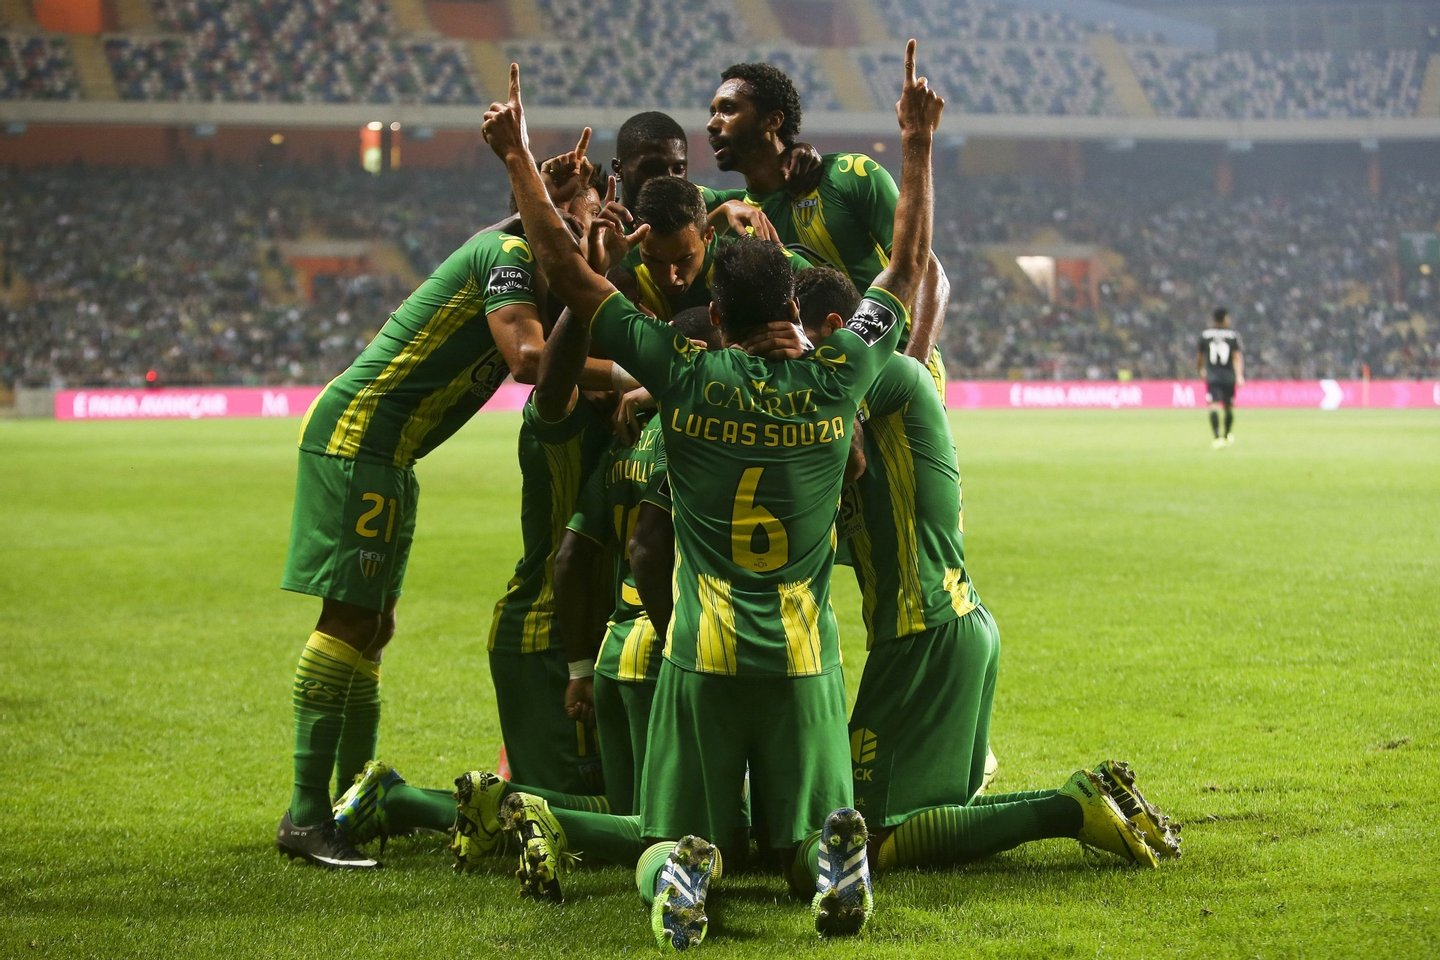 Tondela´s players celebrate after scoring an equalizer against Sporting during their Portuguese First League match held at Aveiro Stadium, Portugal, 14 August 2015. PAULO NOVAIS/LUSA